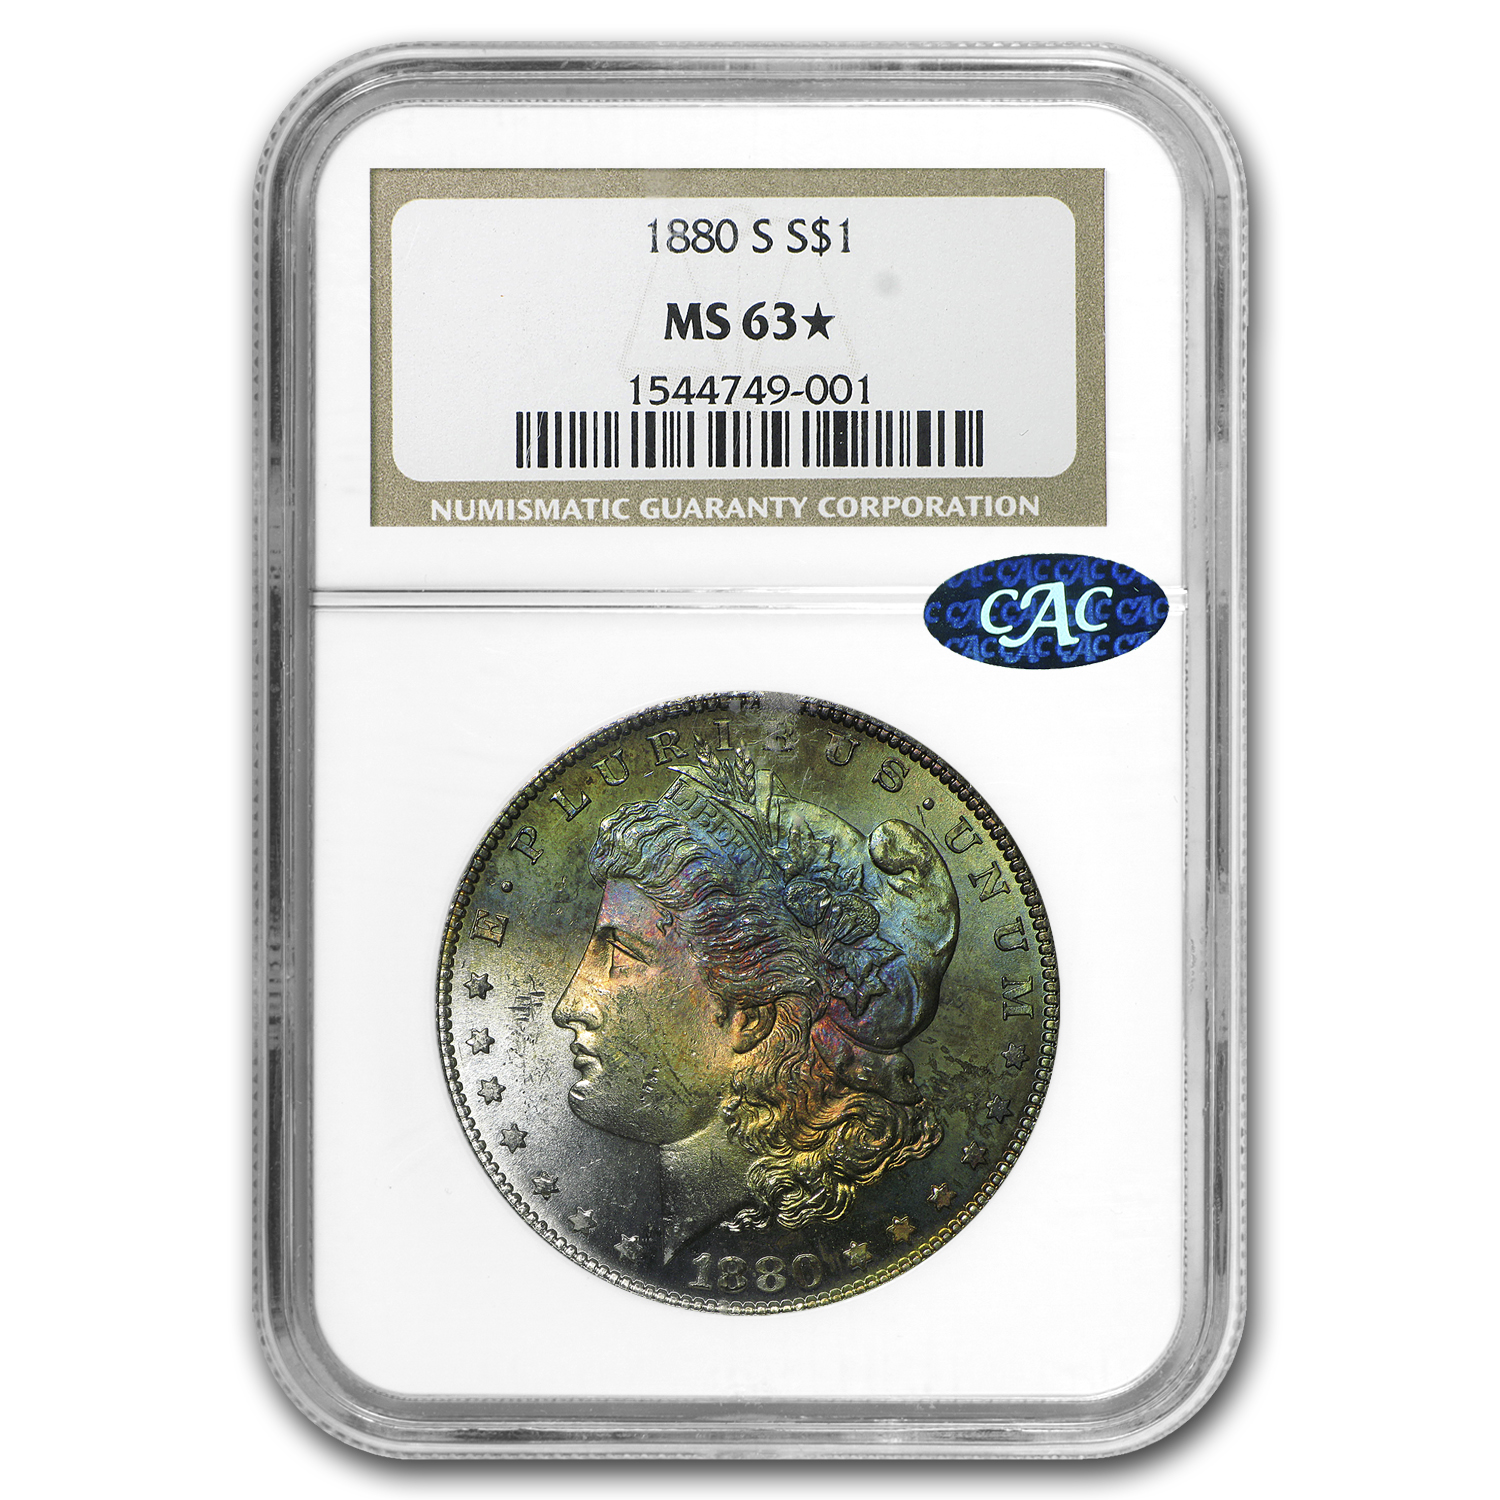 1880-S Morgan Dollar - MS-63* NGC Star Designation - Arc Toning